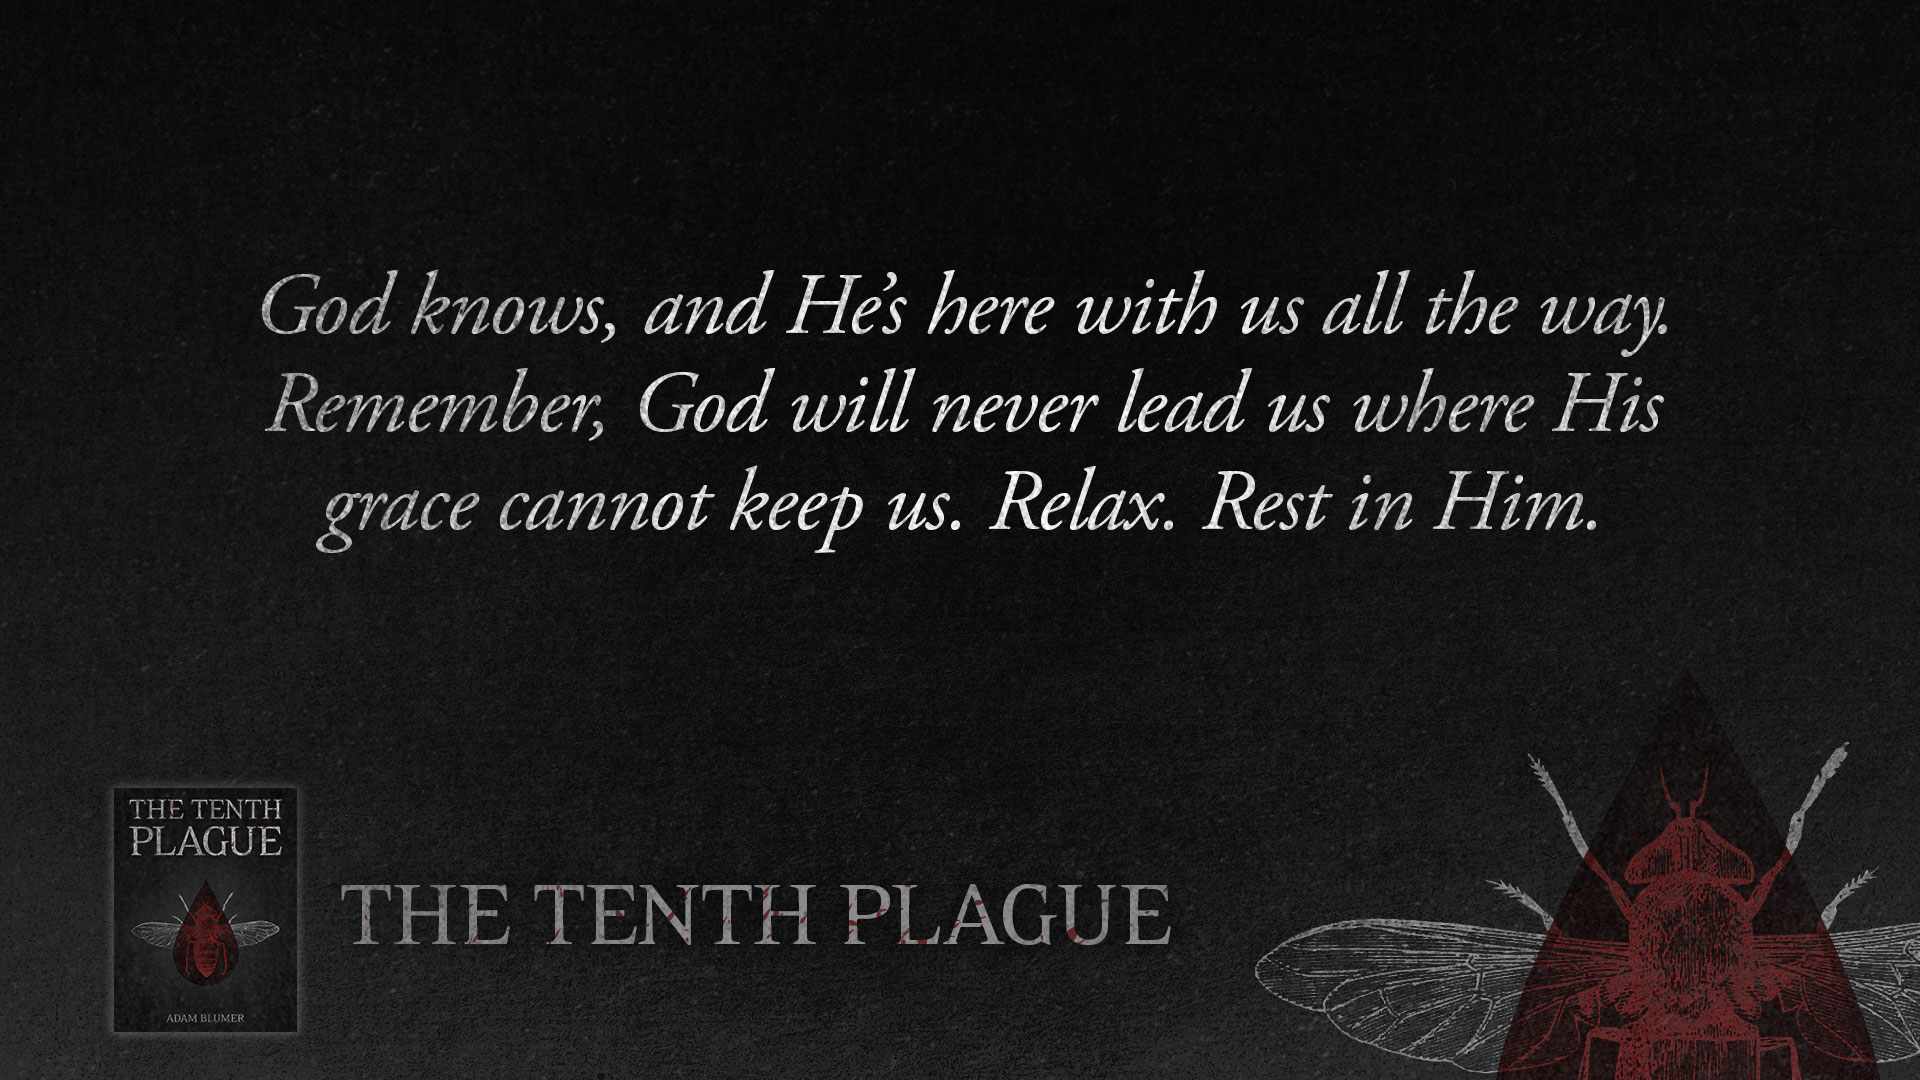 Quotes from The Tenth Plague